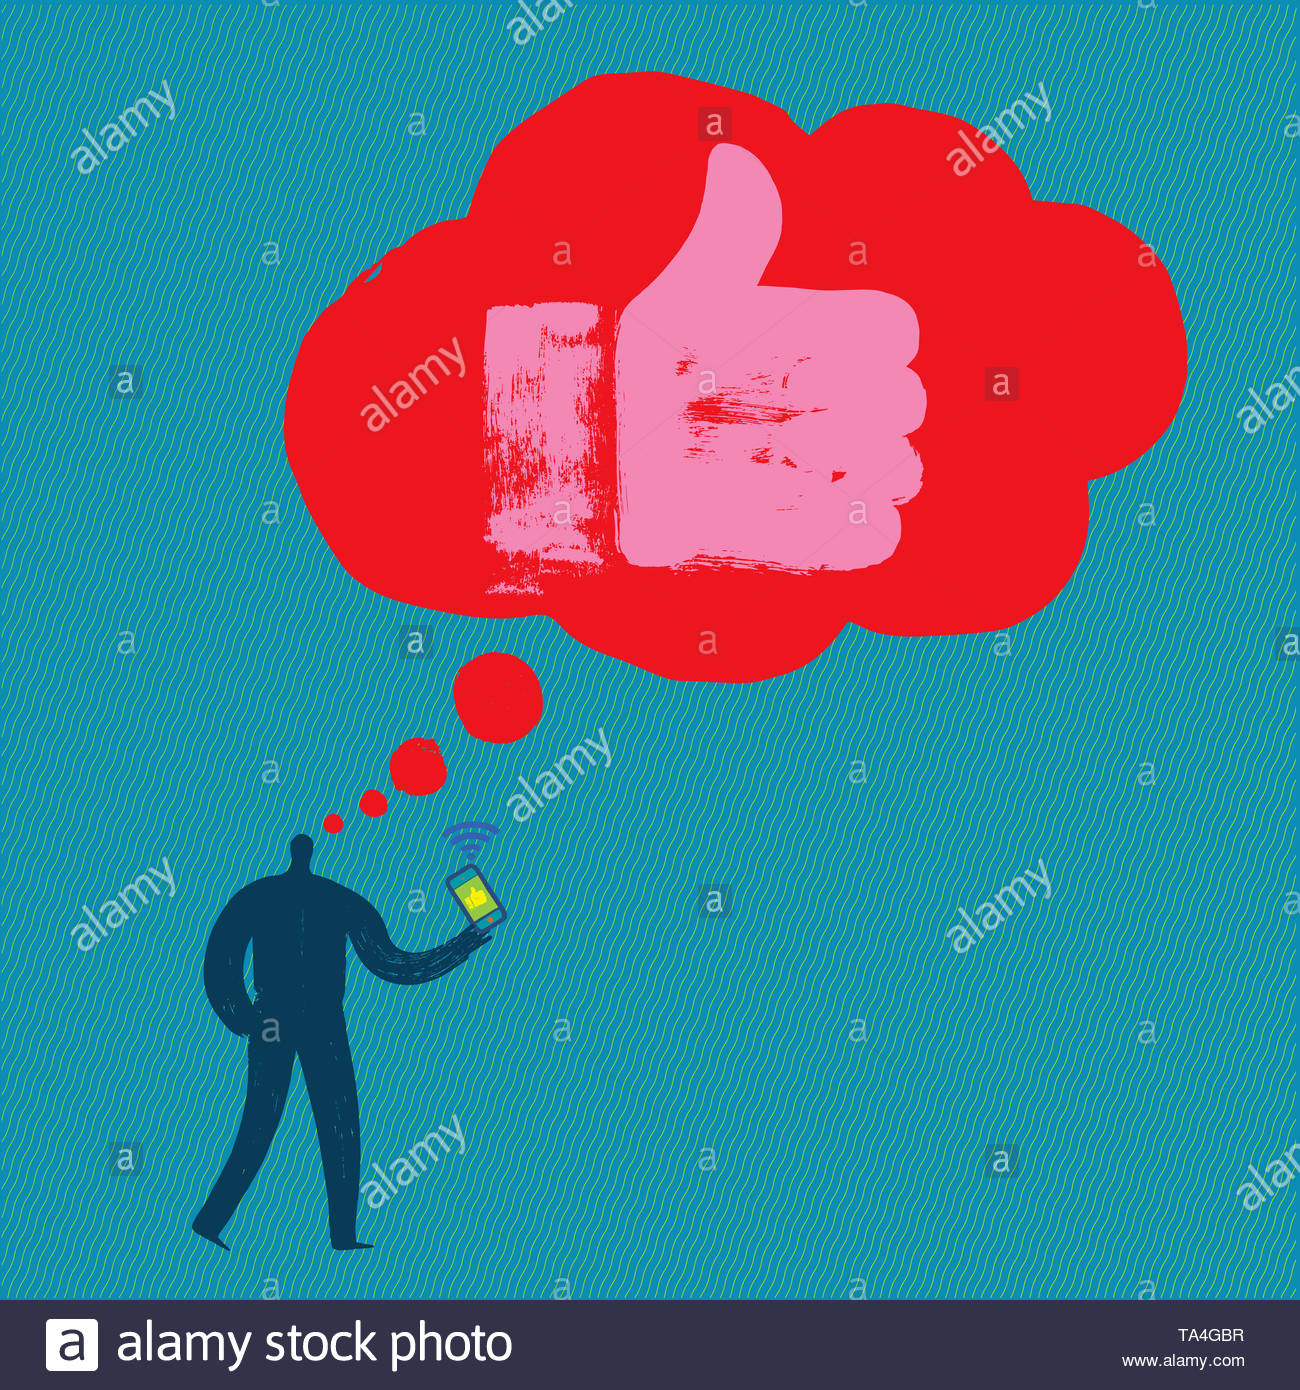 Man with Smartphone thinks about Liking, Hand Like, Illustration, Influencer, Facebook, Liking Online, Social Media, User, Online Profile, Millennial - Stock Image